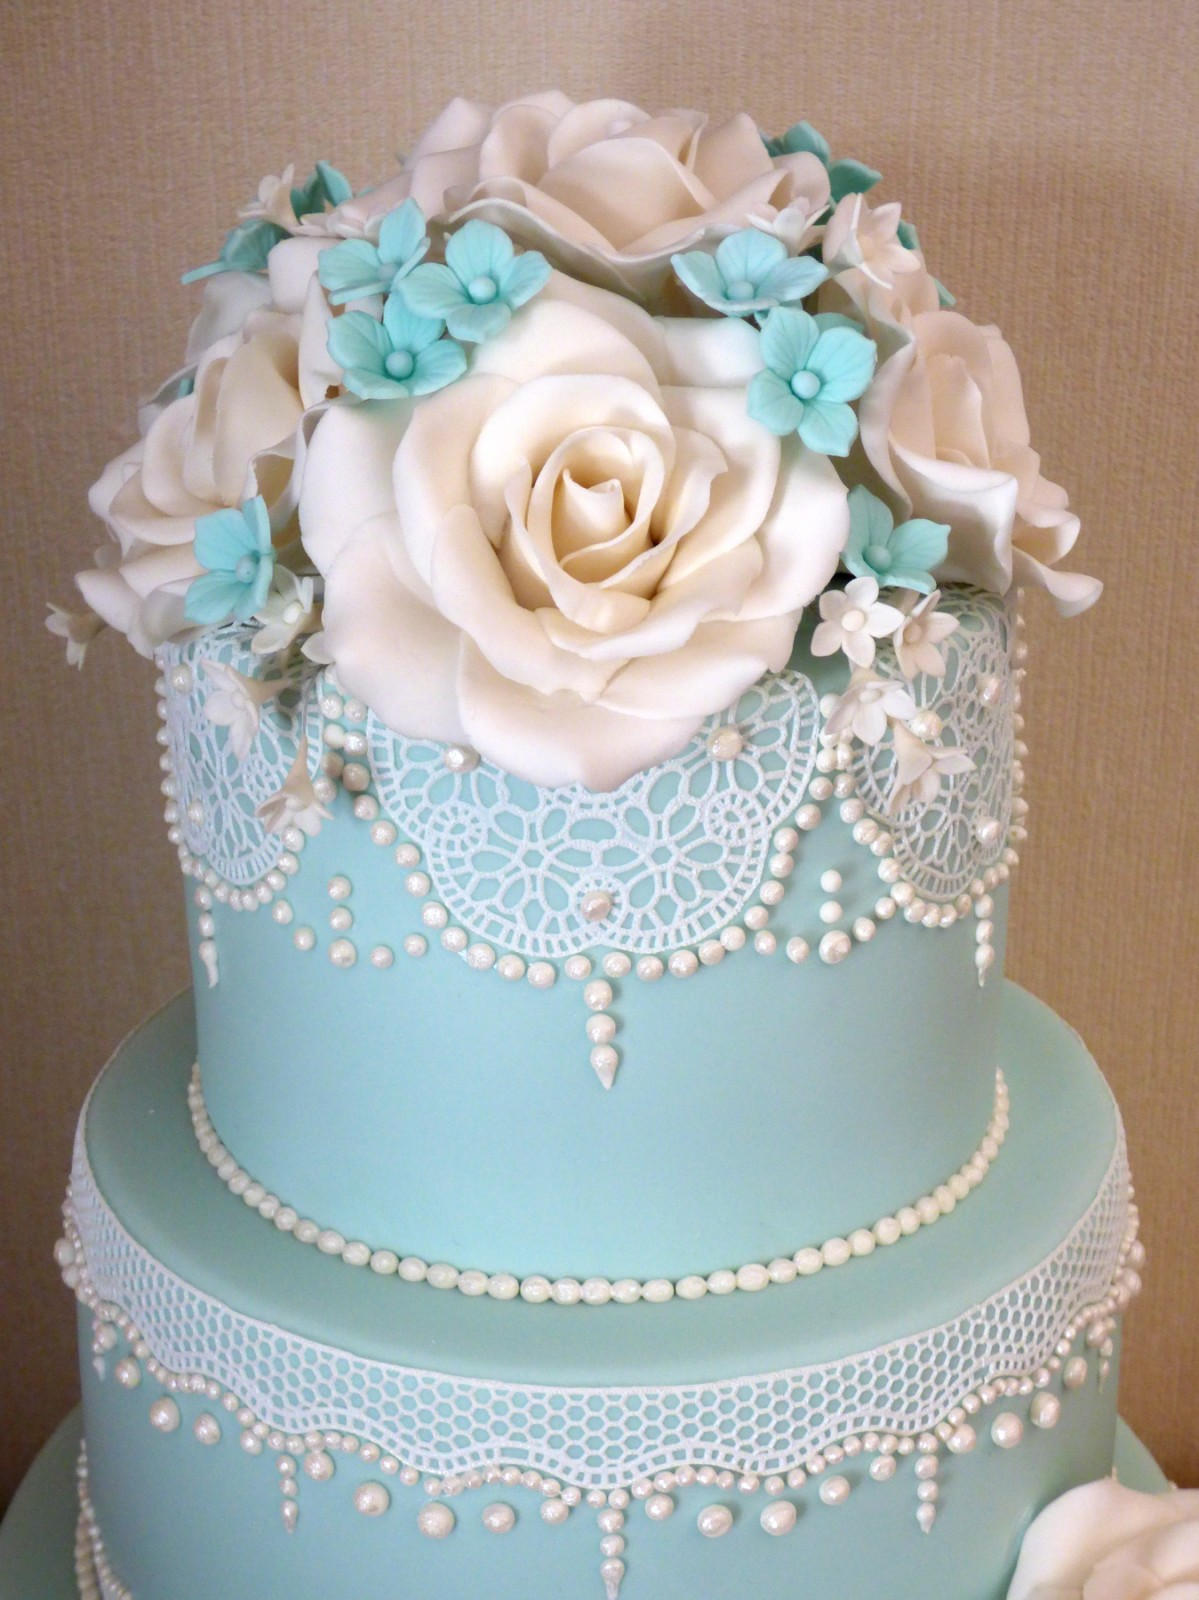 3 Tier Duck Egg Blue Elegant Lace Wedding Cake With White Sugar